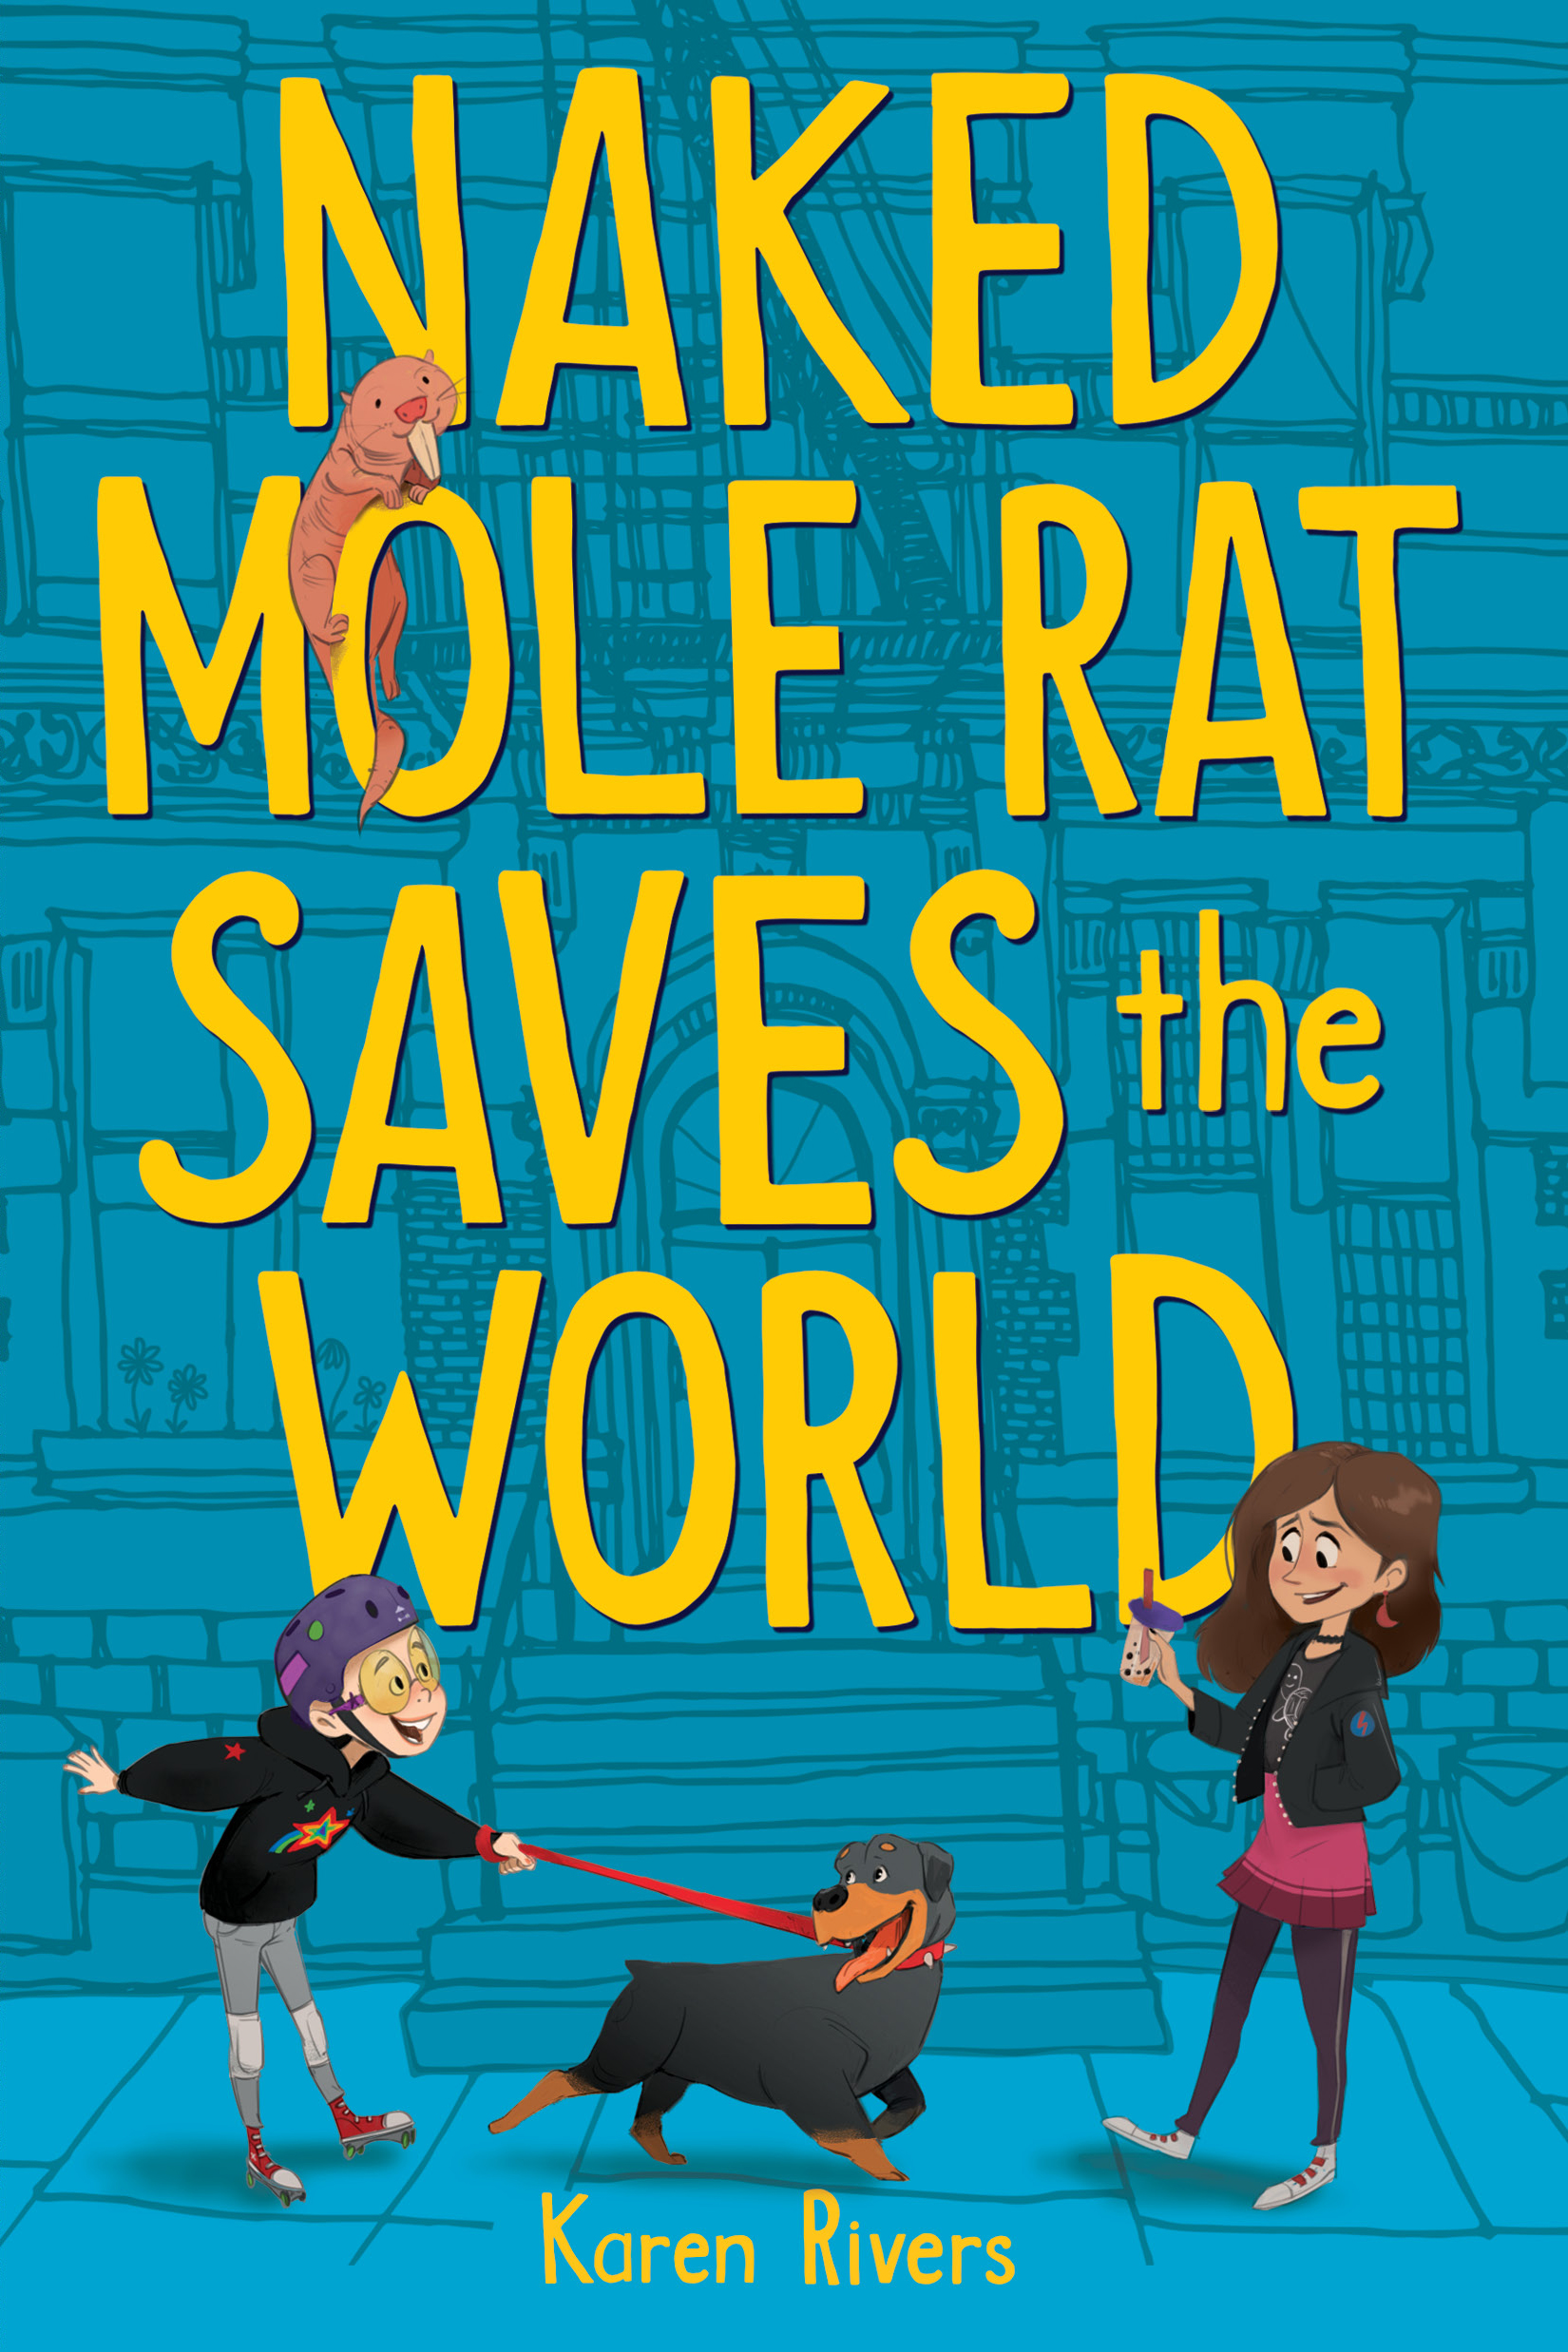 Naked Mole Rat Saves the World by Karen Rivers